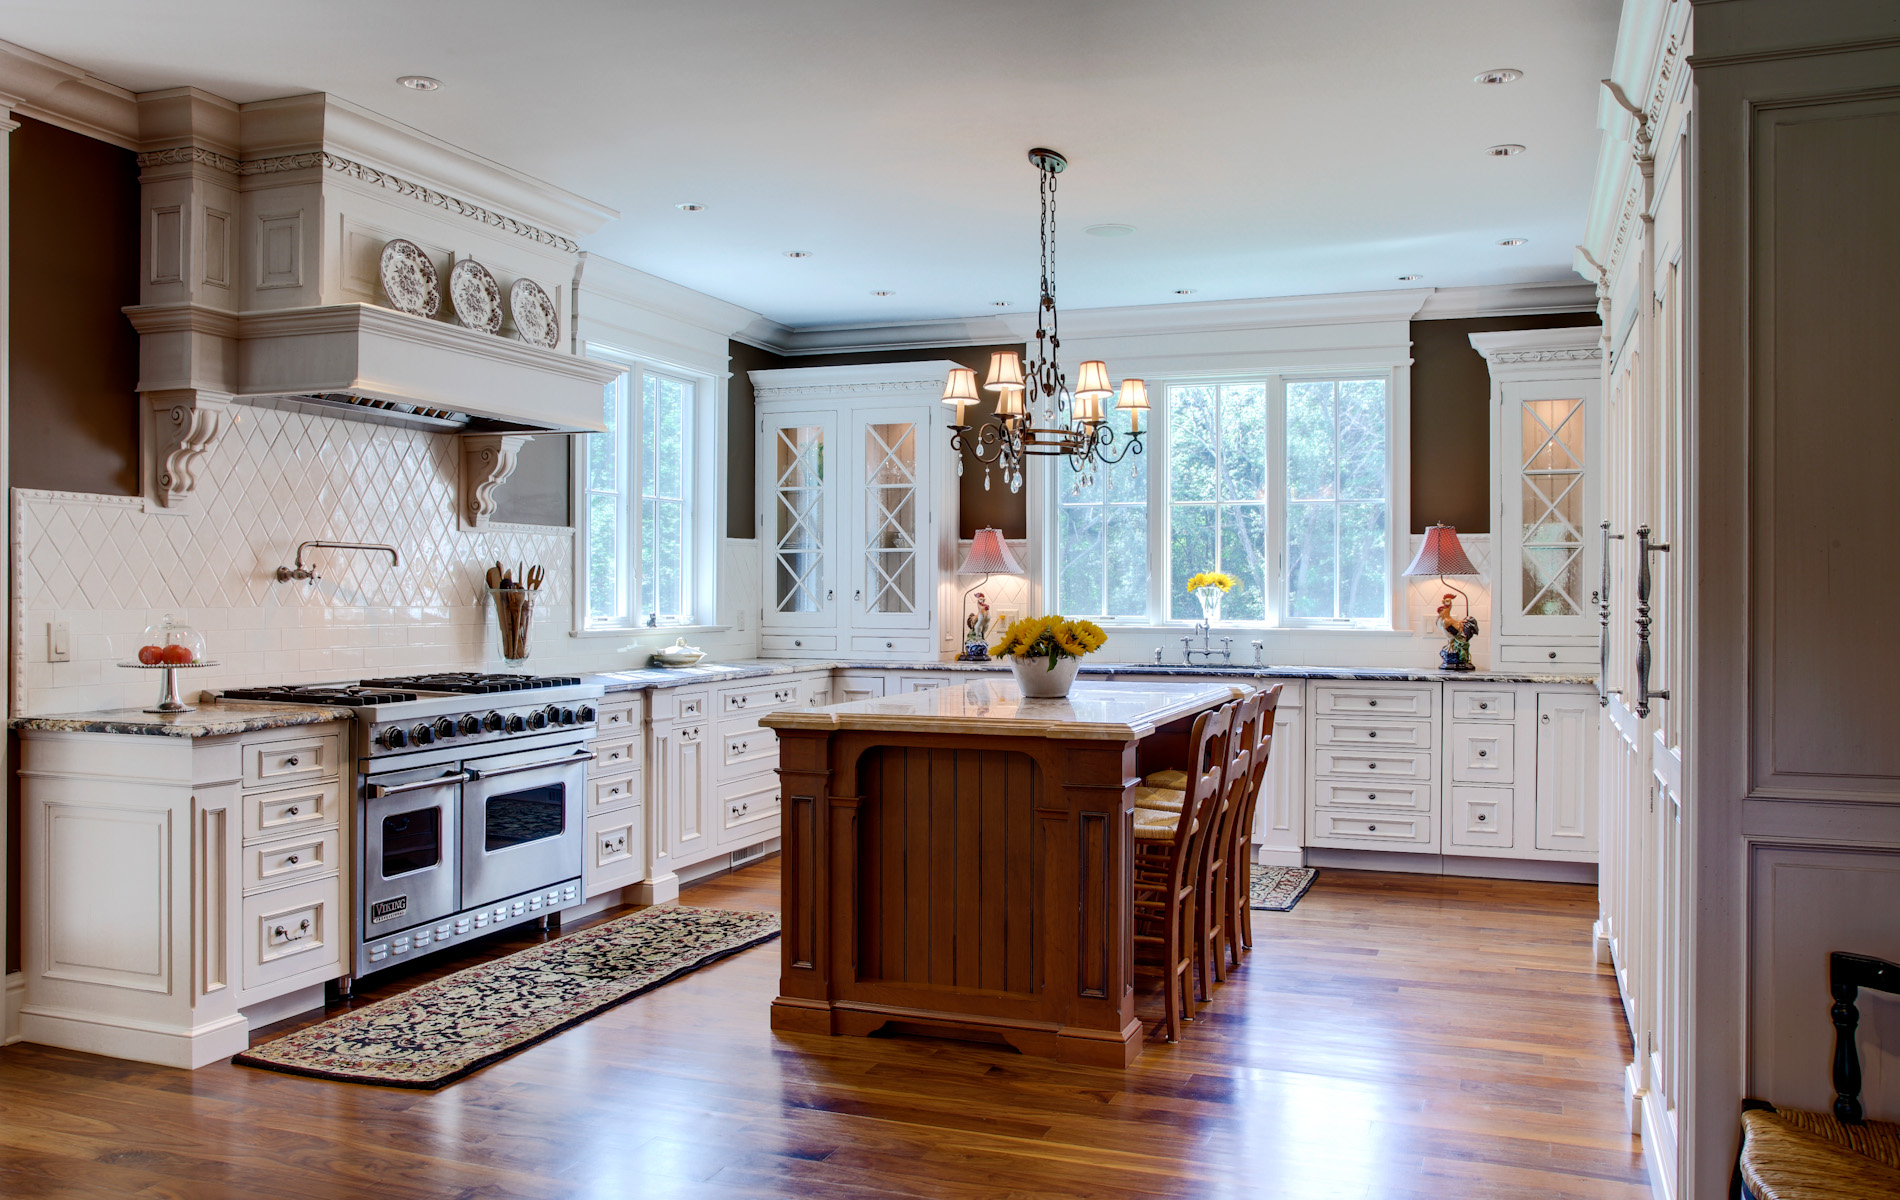 Kitchens Baths Ricci Construction Group - Bathroom remodel cheshire ct